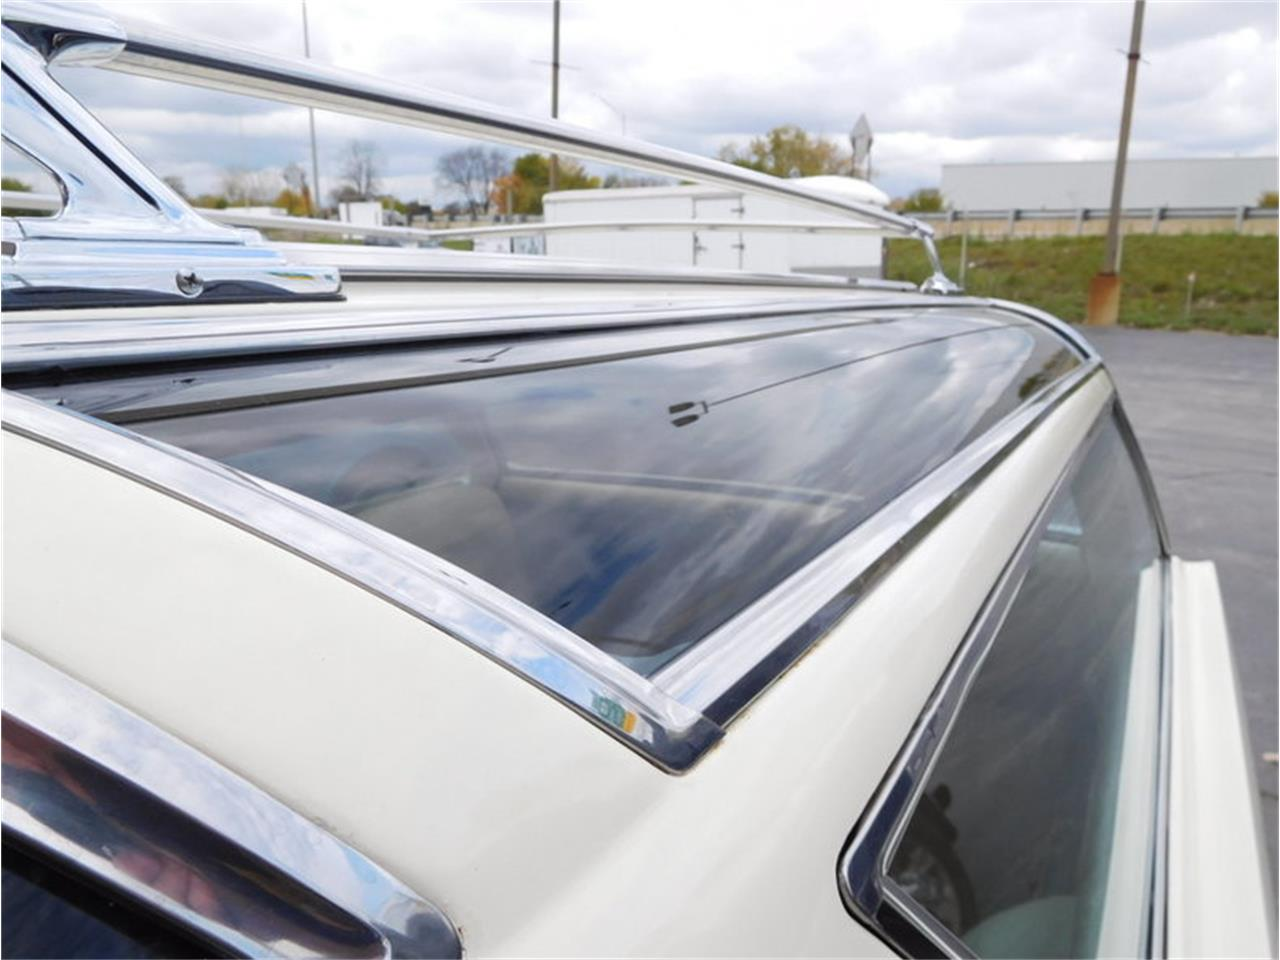 Large Picture of 1967 Oldsmobile Vista Cruiser located in Alsip Illinois - $19,900.00 - MABL